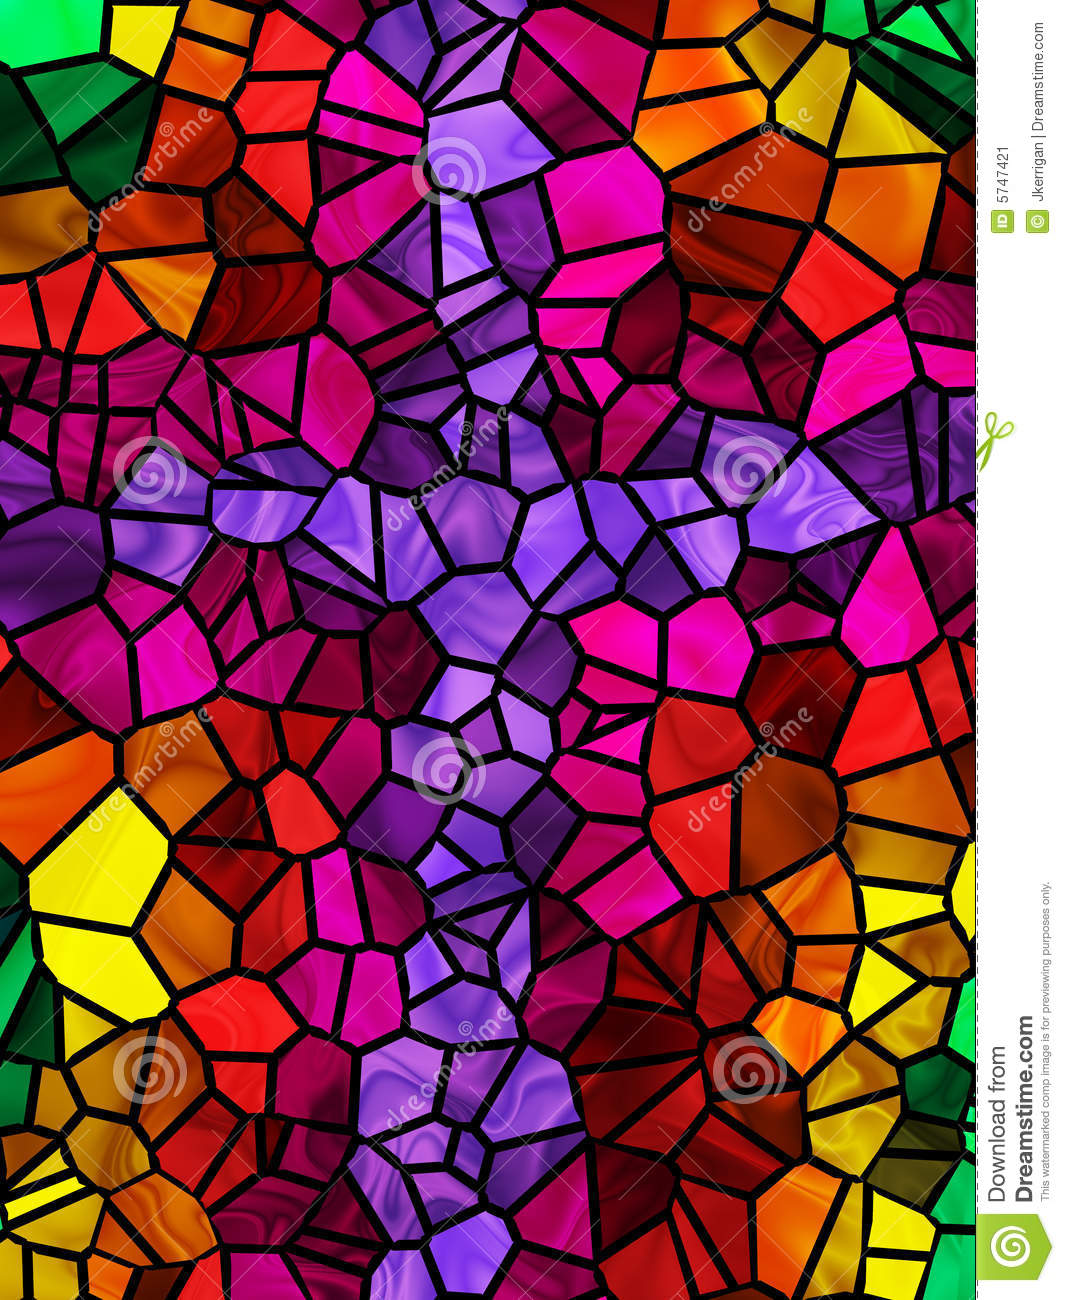 Stained Glass Cross Stock Image